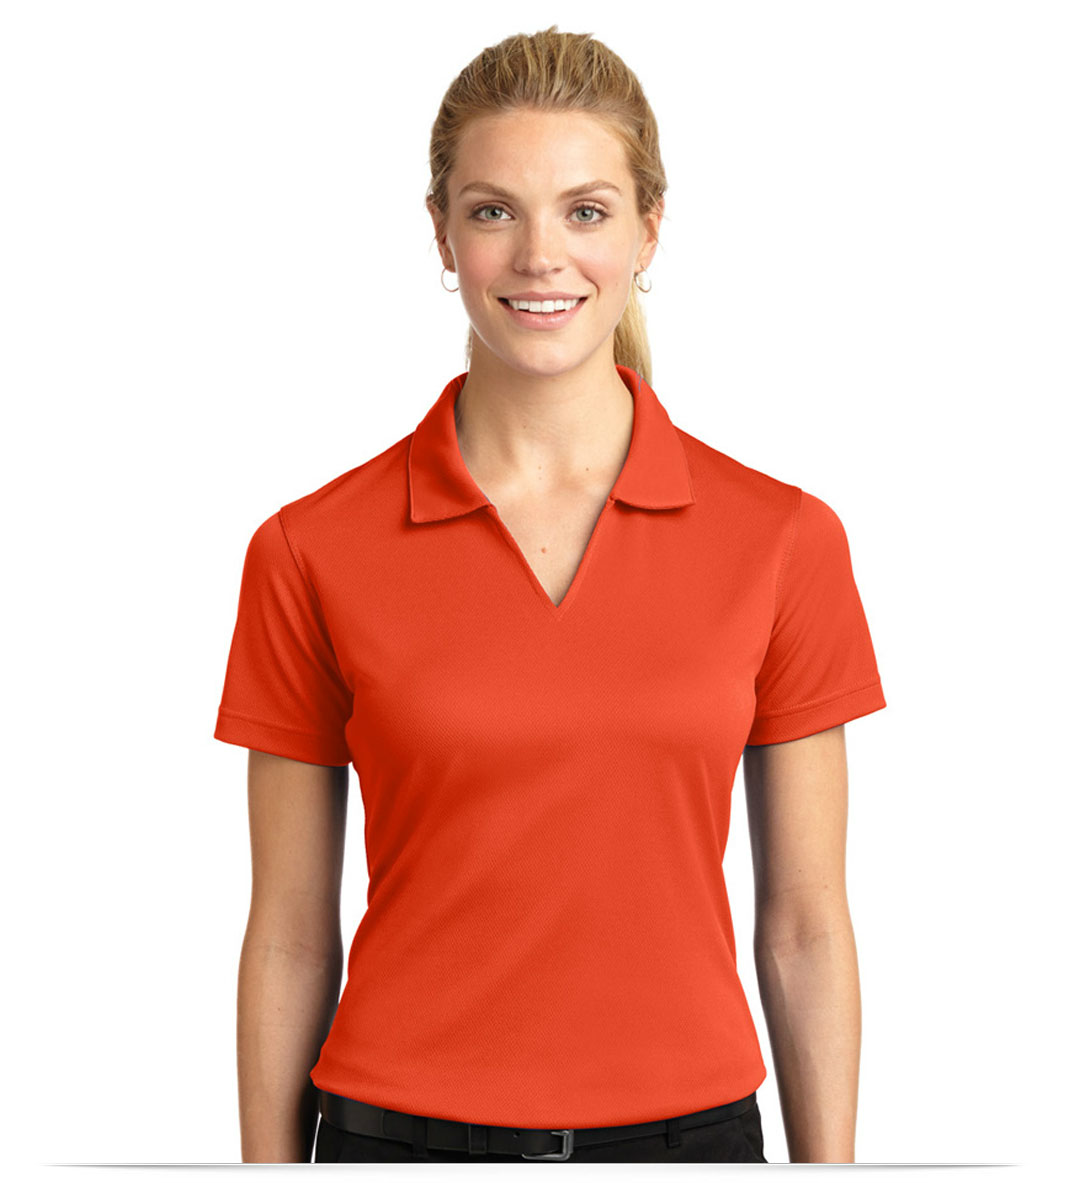 Design Embroidered Ladies Dri Mesh V Neck Sport Shirt Online